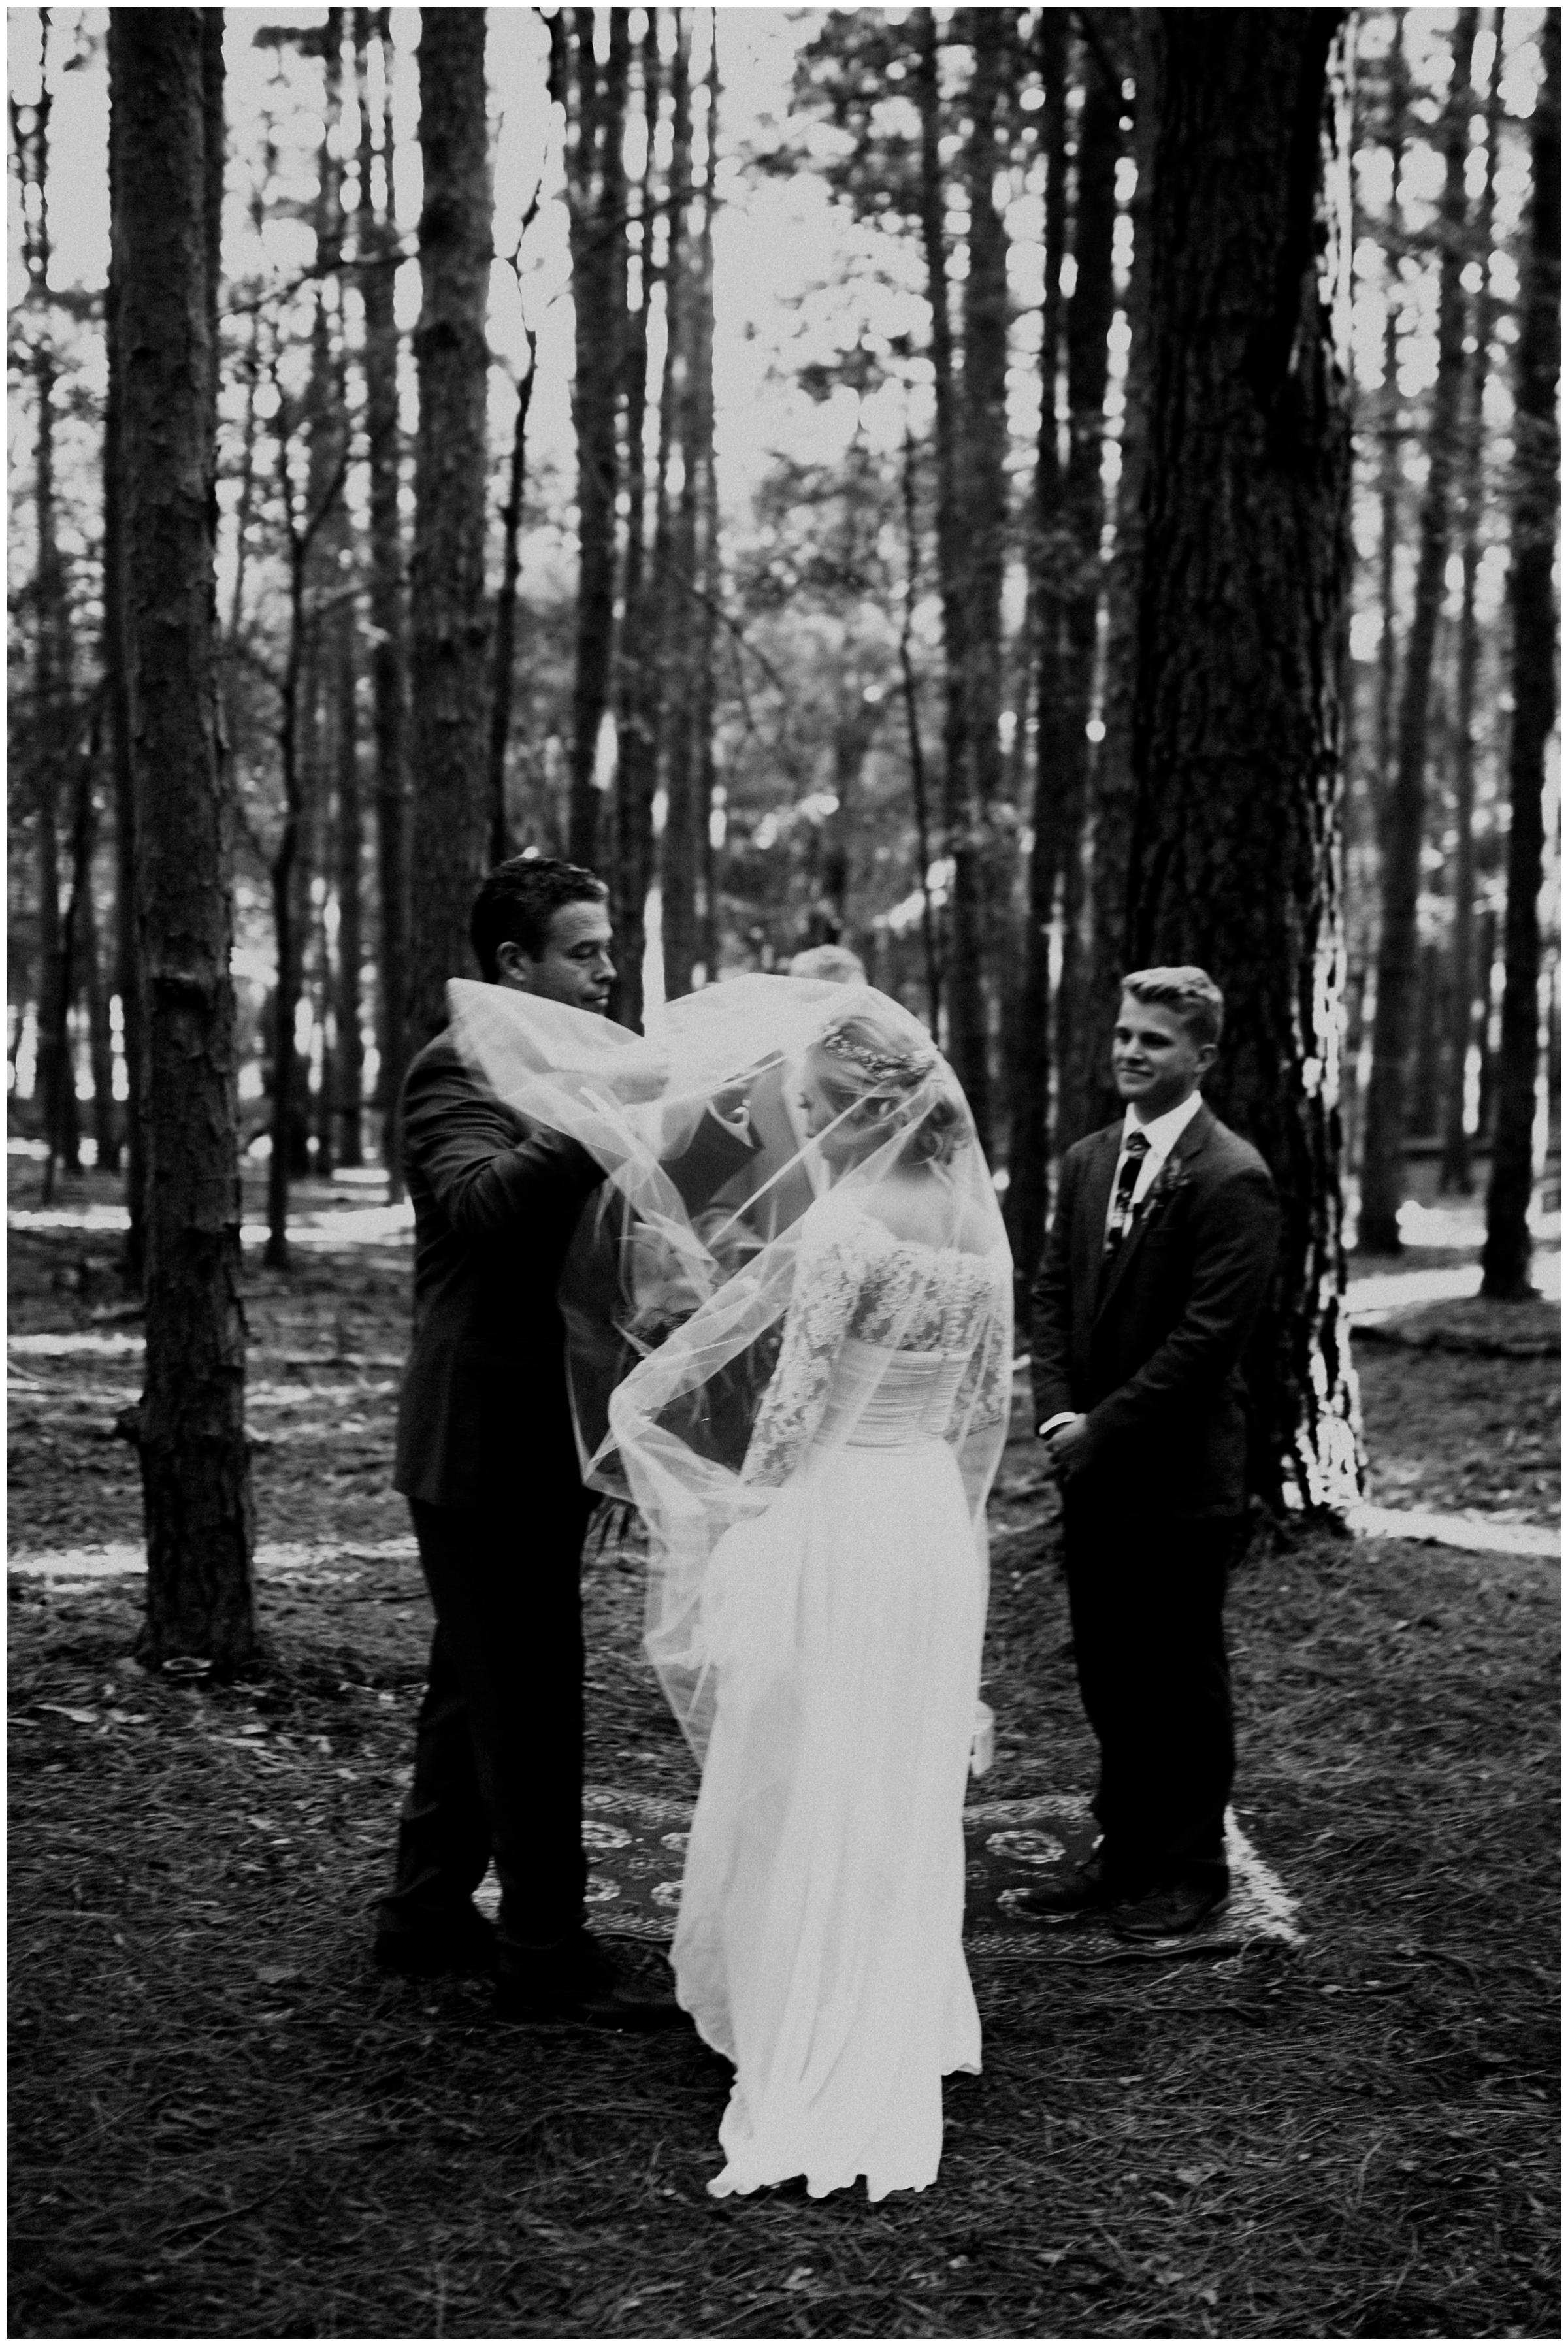 brides father lifts her veil at wedding